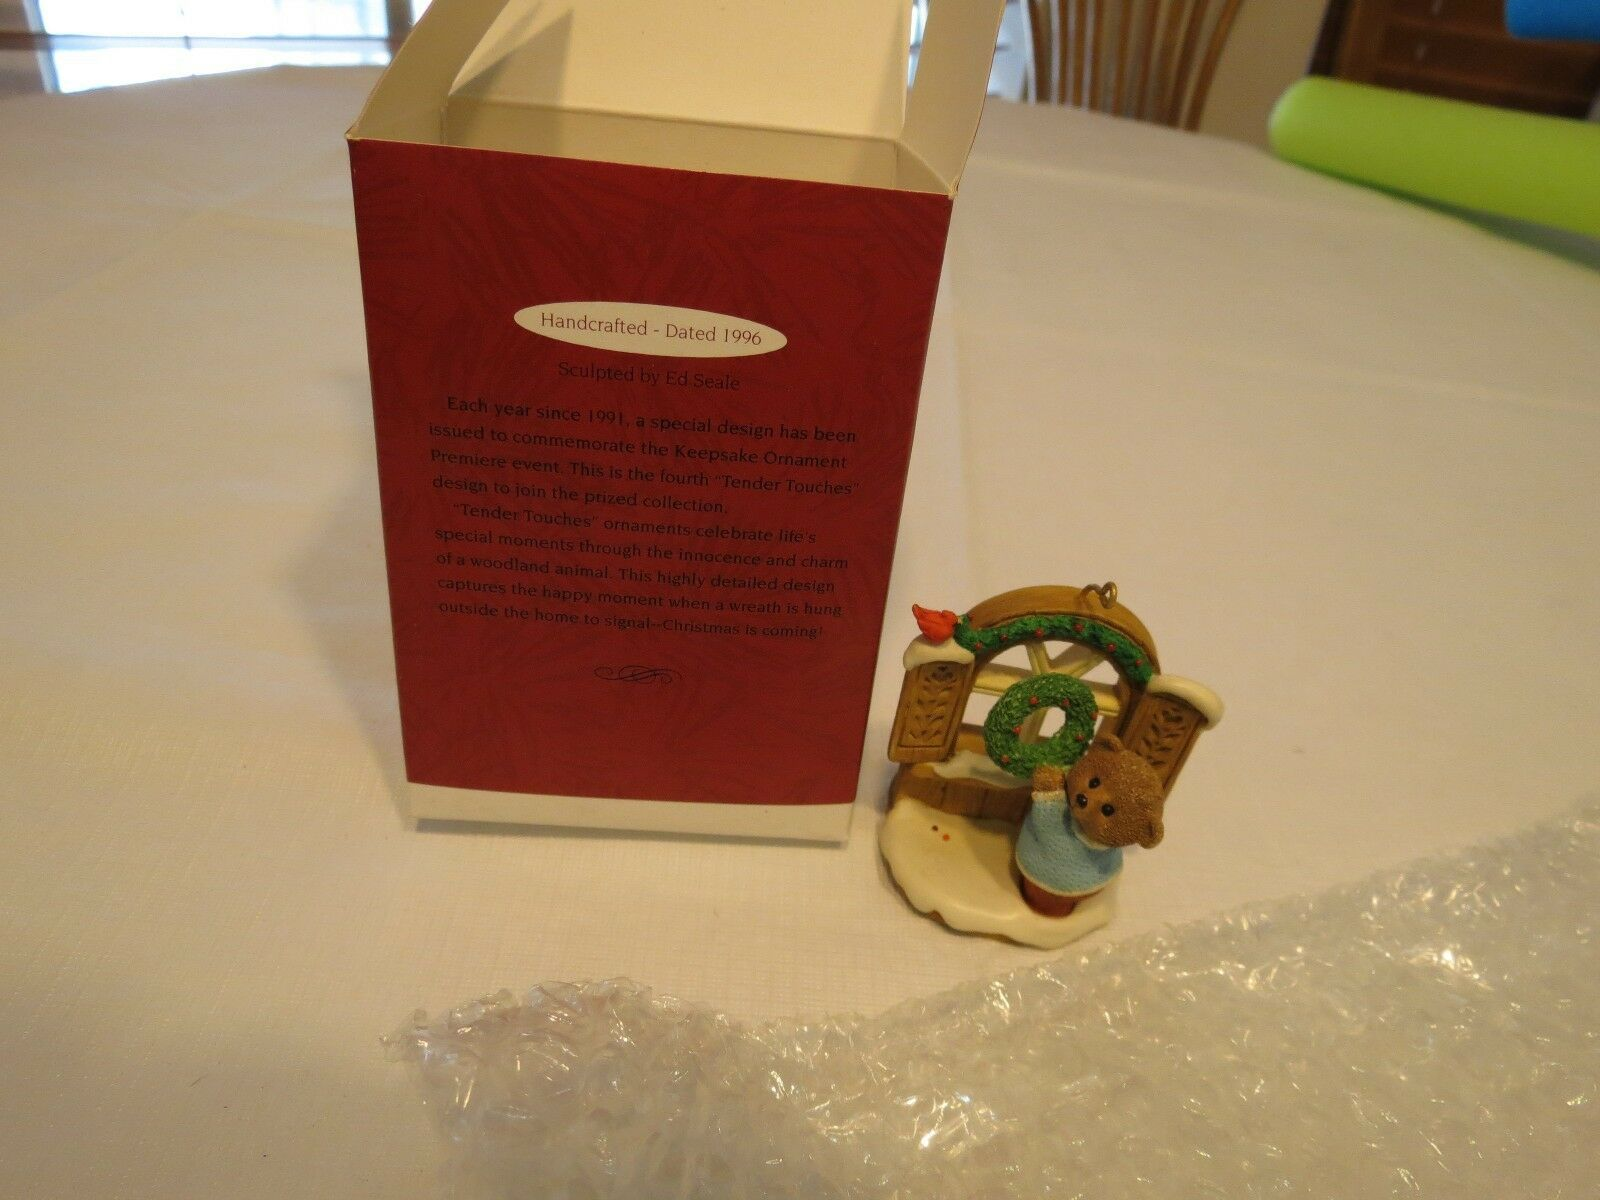 Hallmark Welcome Sign Tender Touches 1996 Ornament Christmas Keepsake RARE NOS image 3